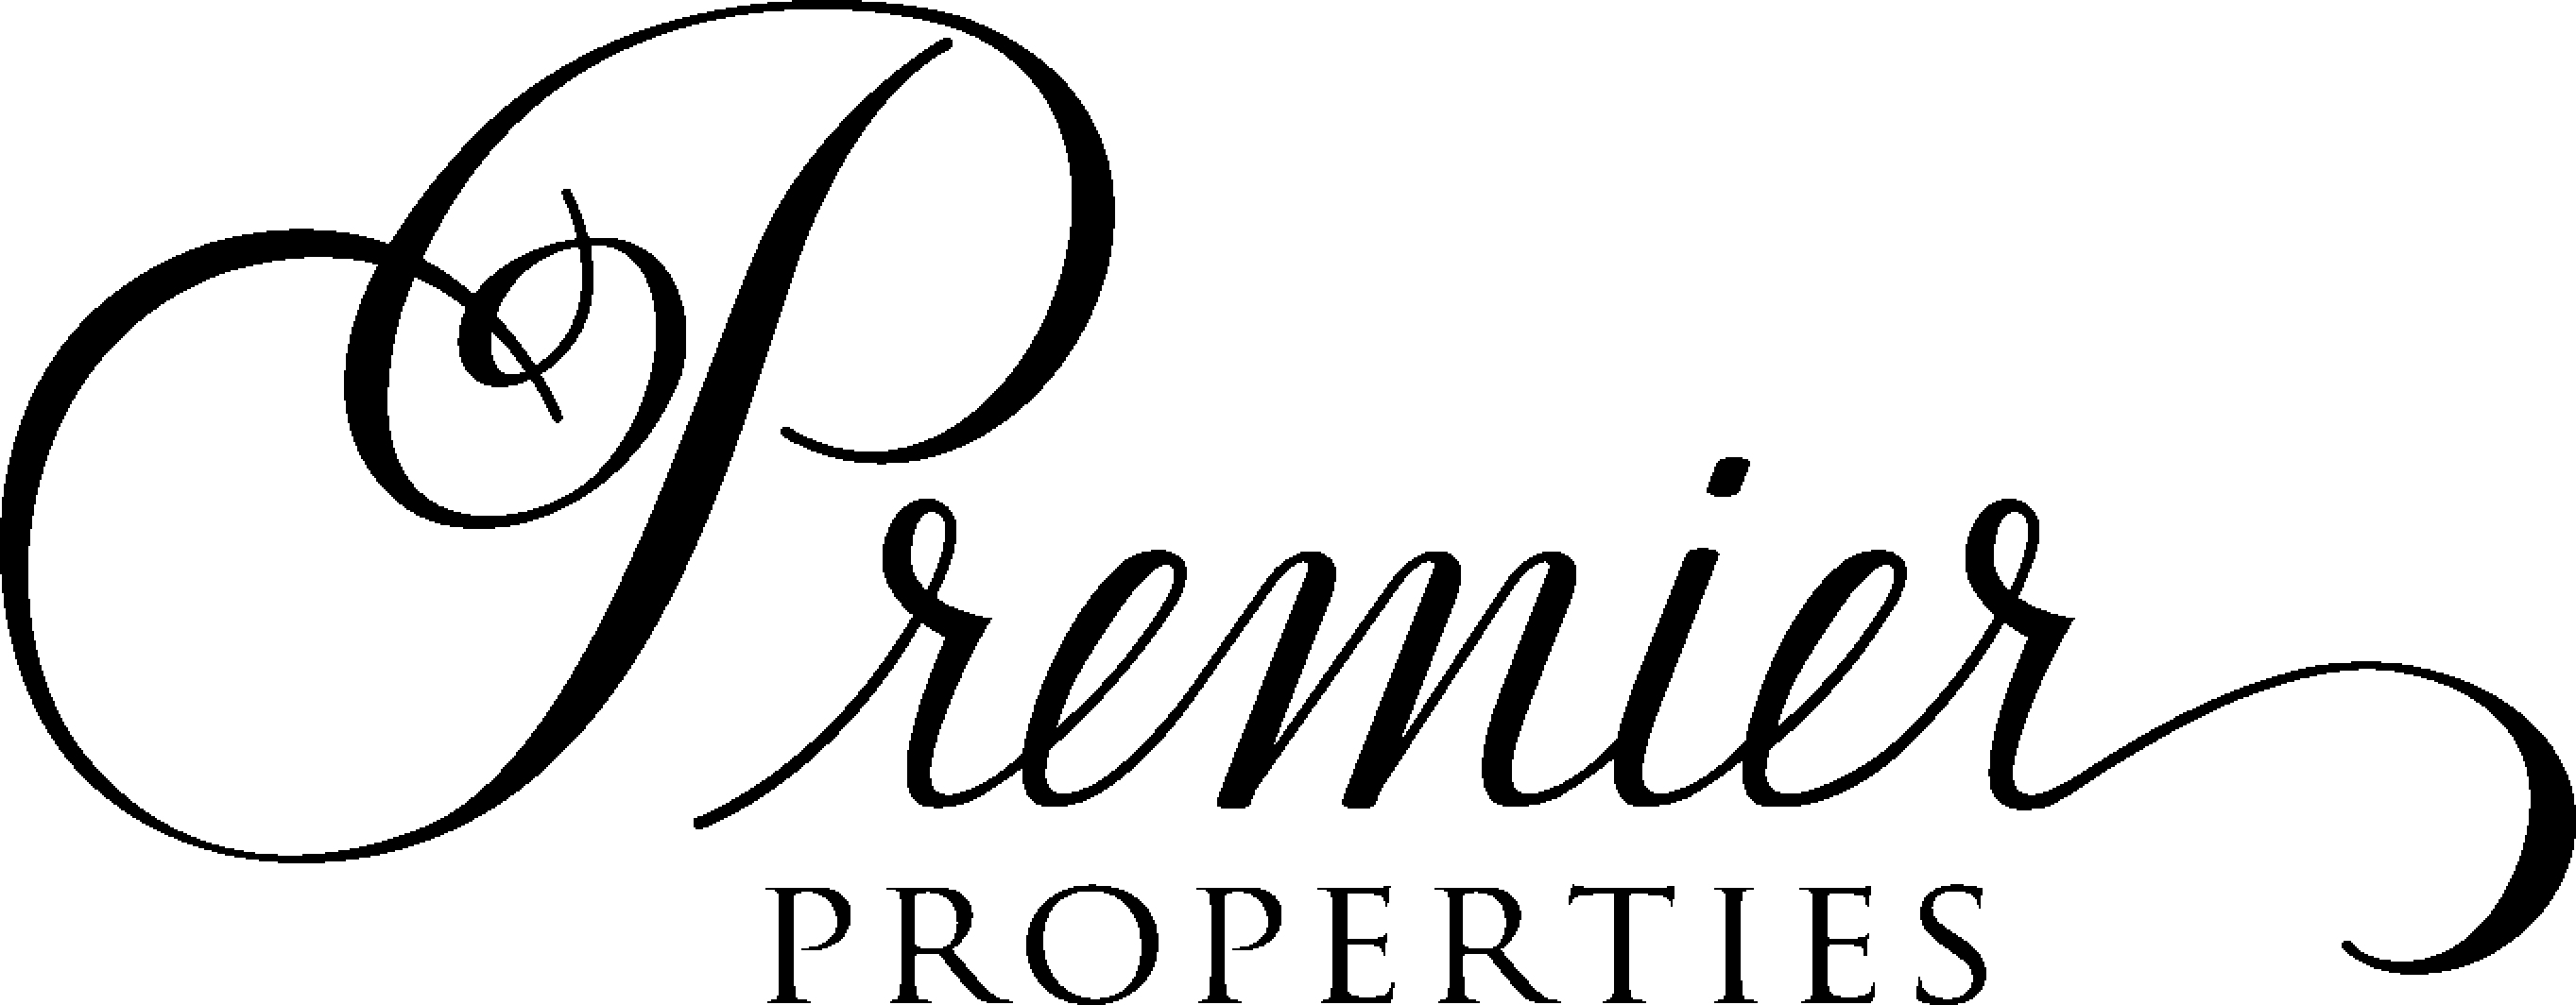 PremierProperties